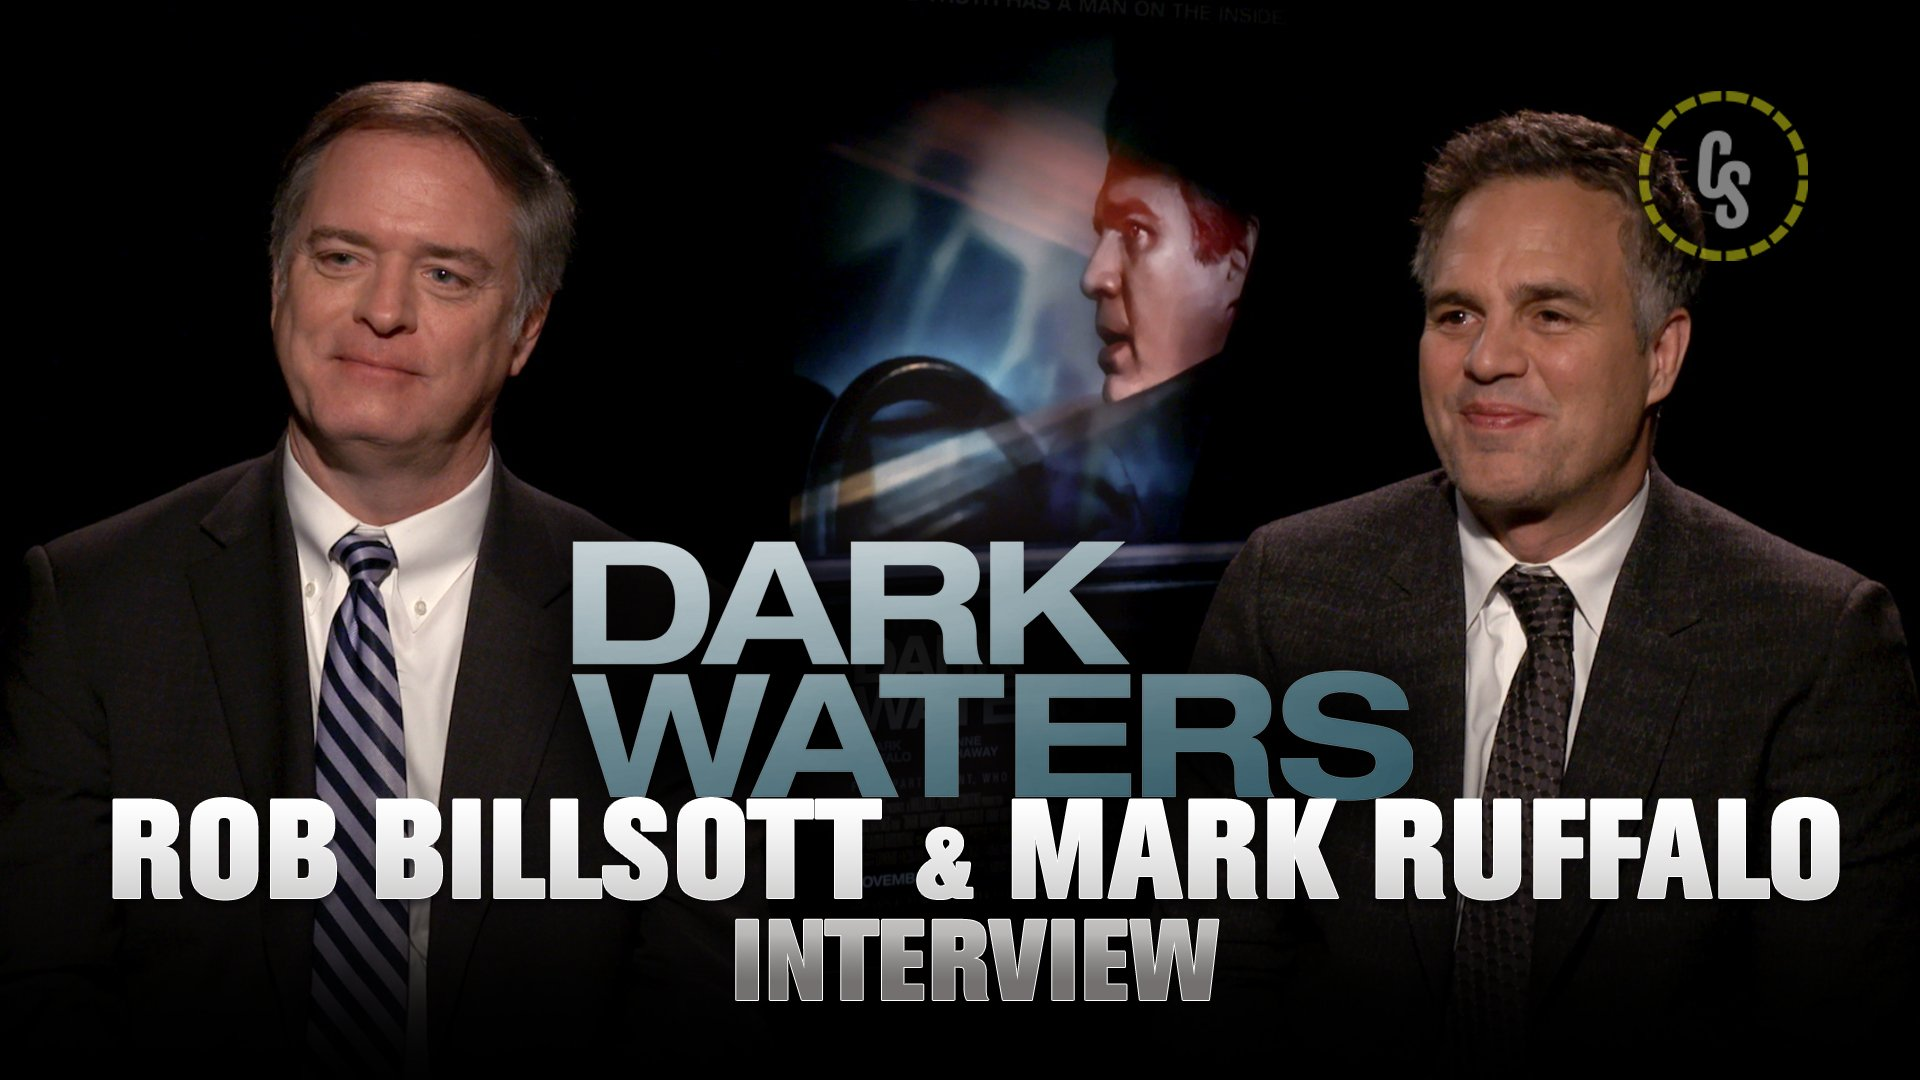 CS Video: Rob Billsott & Mark Ruffalo Talk Dark Waters Movie